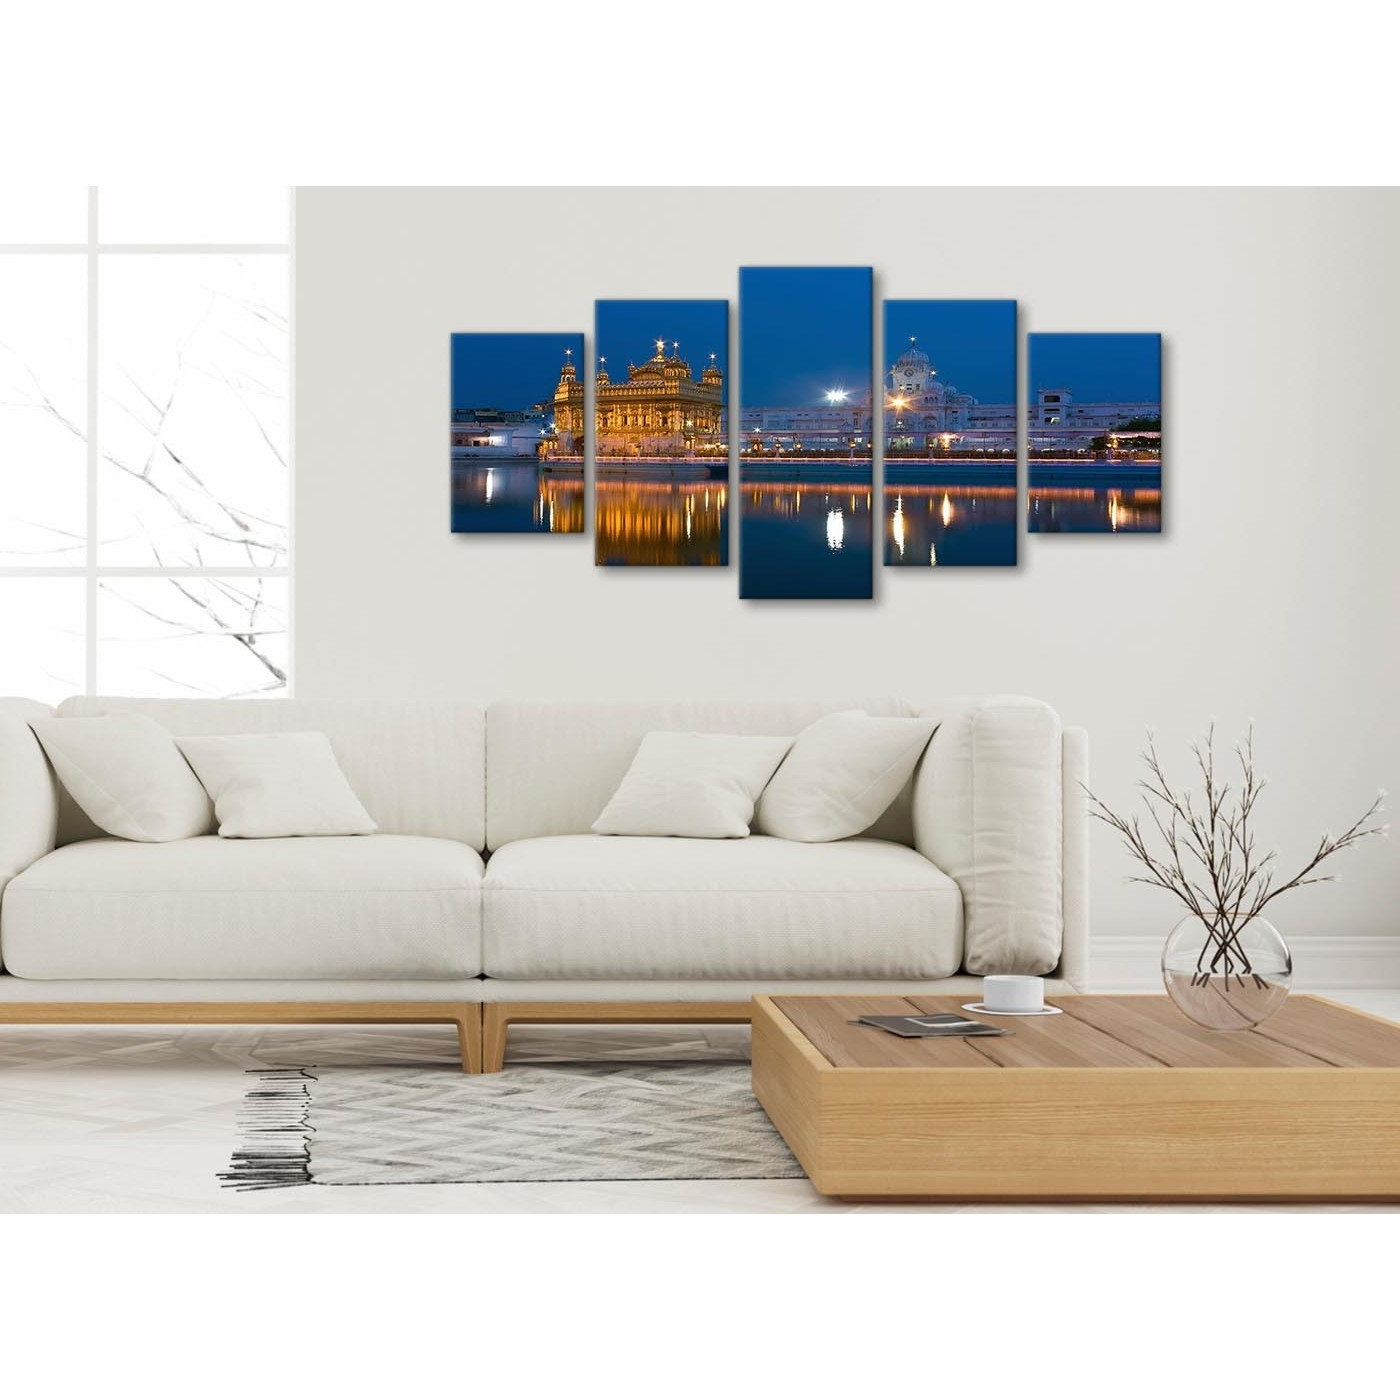 Preferred 5 Panel Canvas Wall Art Pictures – Sikh Golden Temple Amritsar Throughout 5 Piece Wall Art (View 15 of 20)